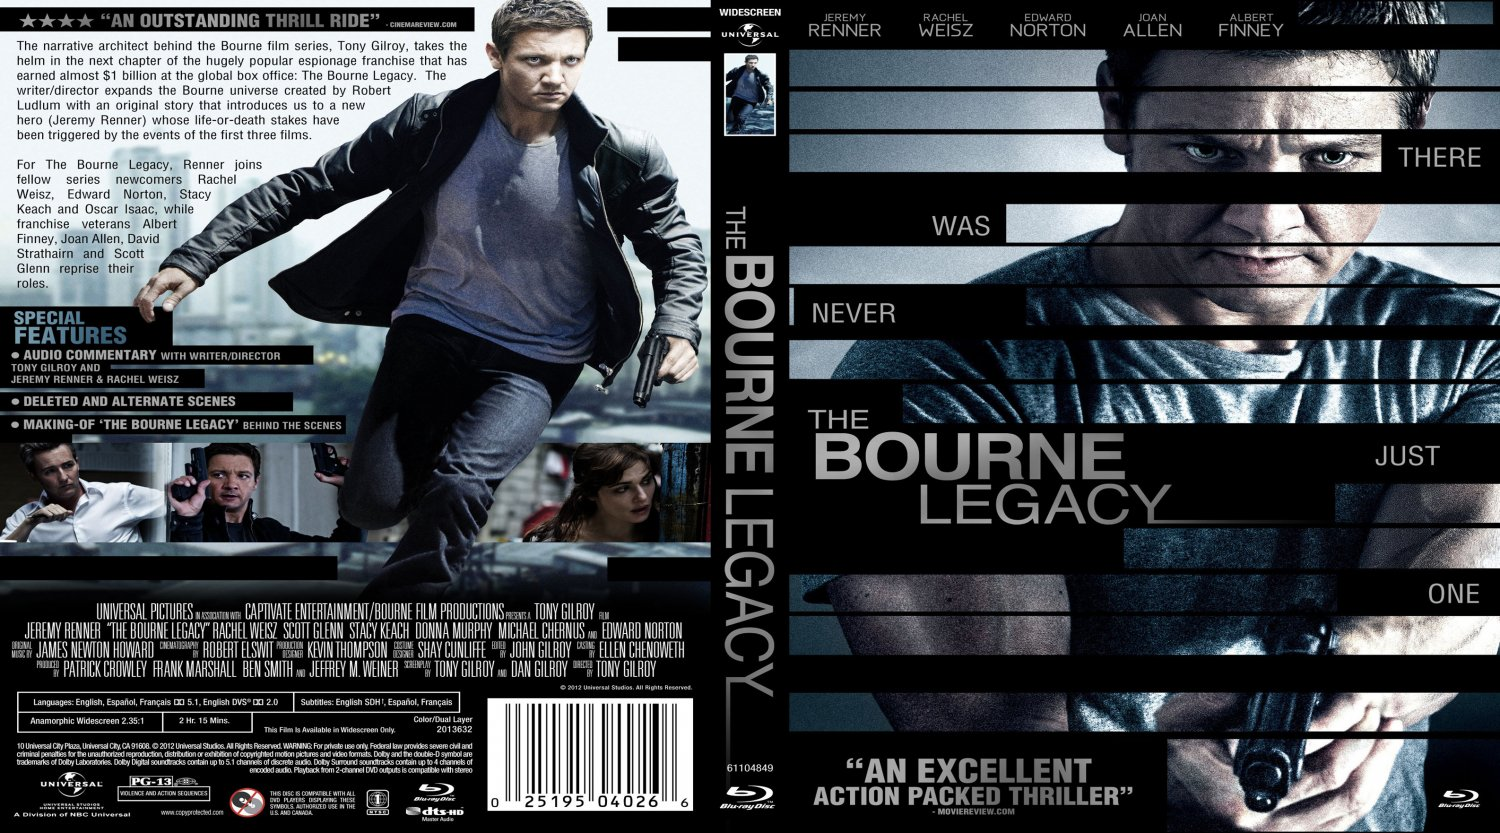 The Bourne Legacy - Movie Blu-Ray Custom Covers - The ...